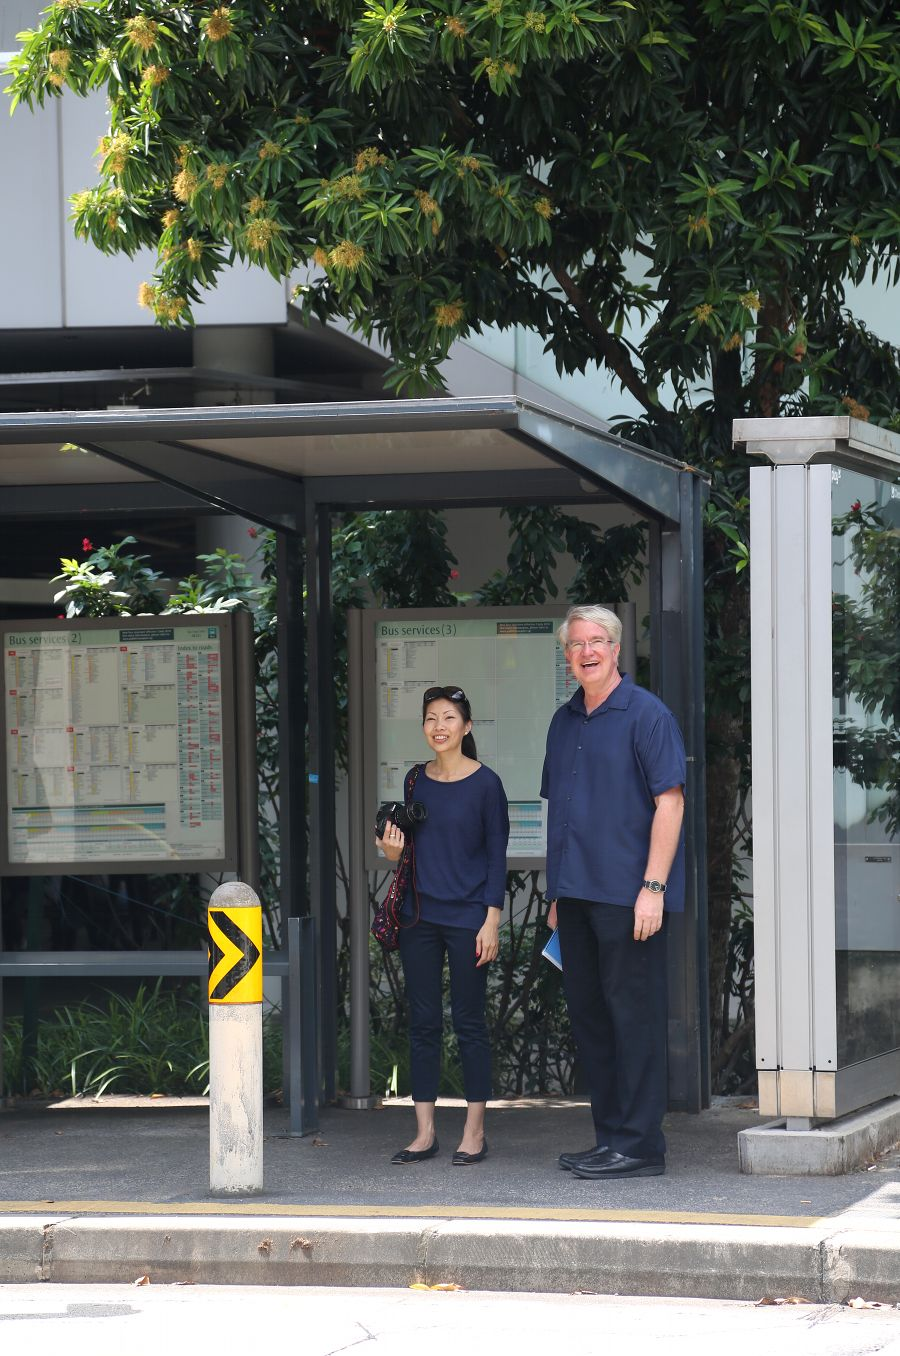 Cheryl Marie Cordeiro, Tom Estad, Singapore Management University campus, 2016